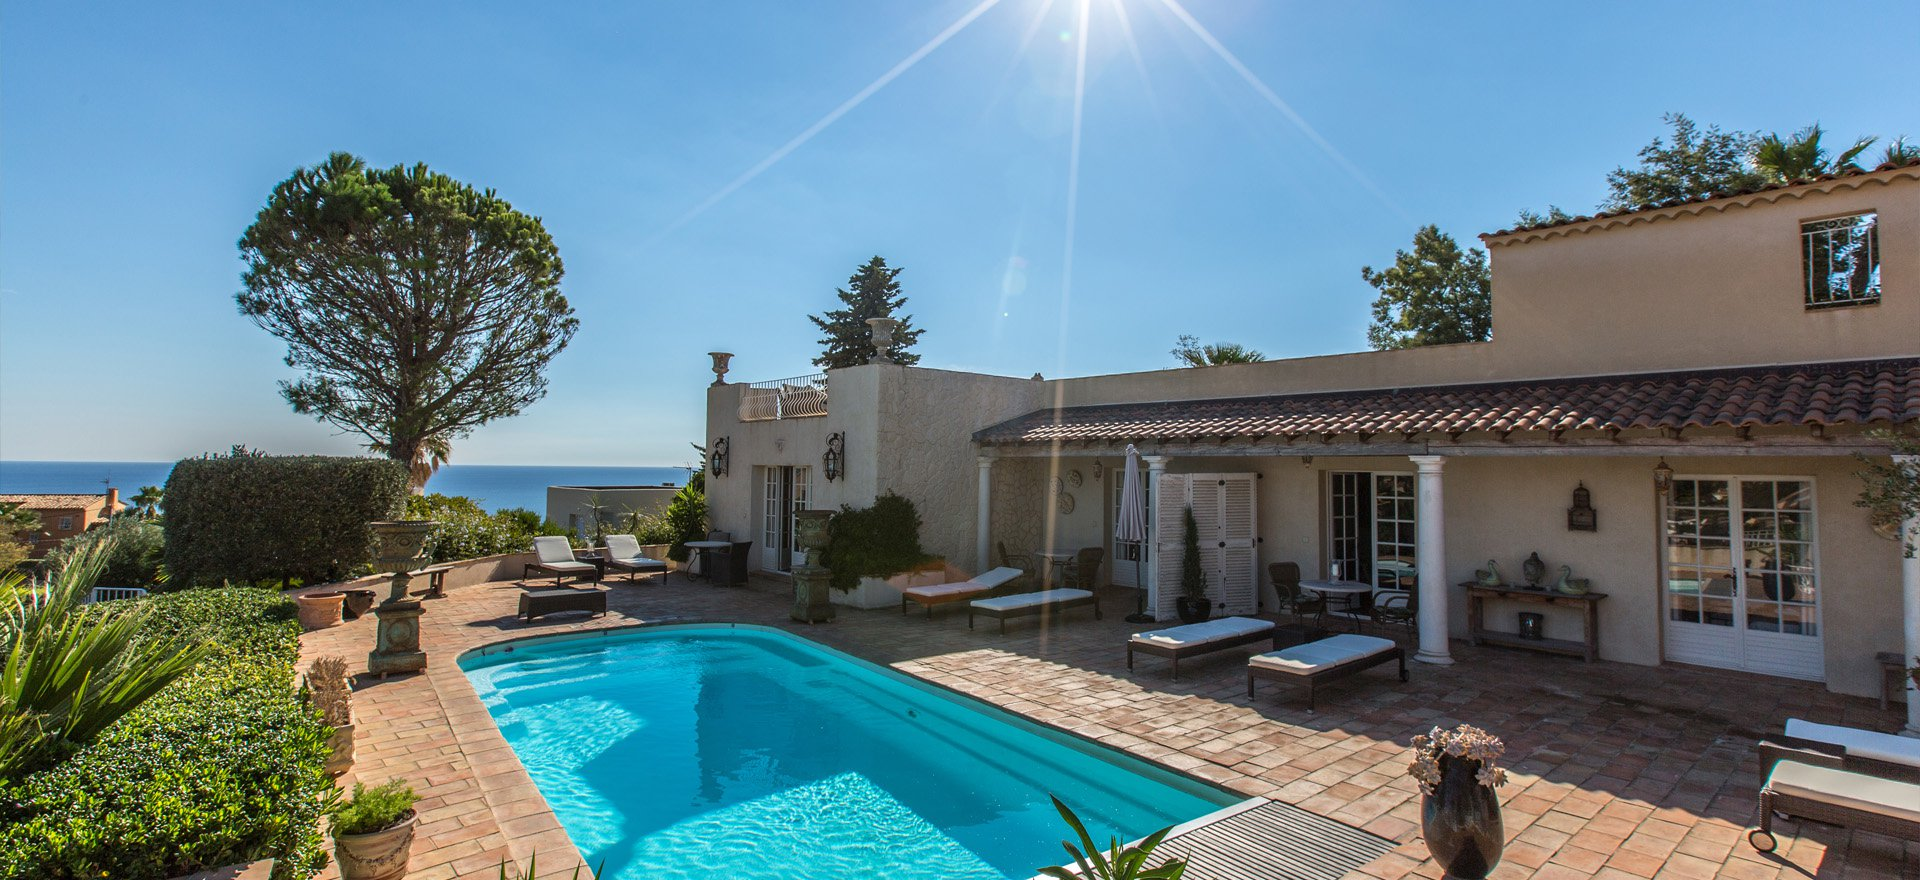 Property for sale  in Les Issambres, superb sea view, main house with 5 apartments